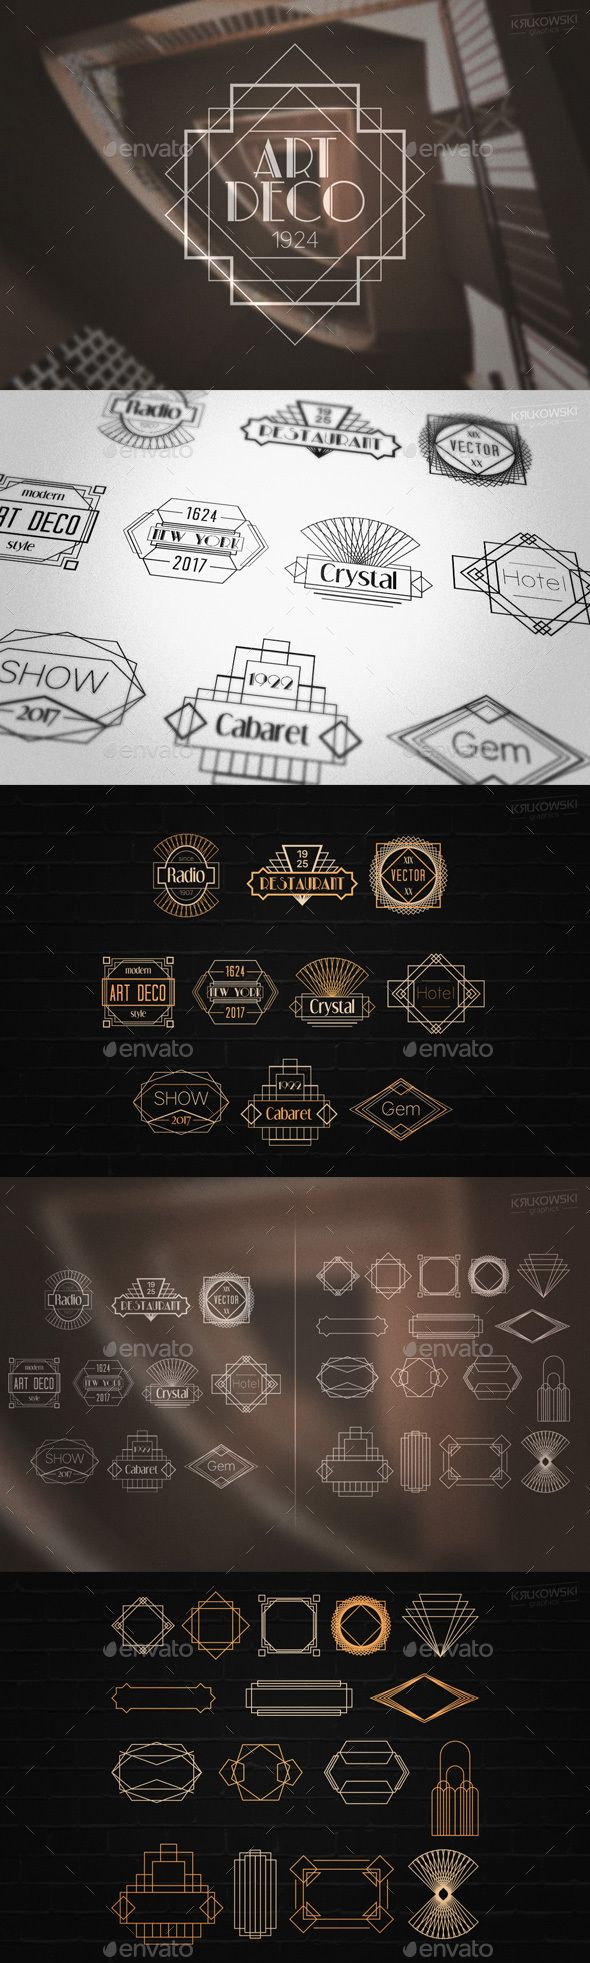 art deco gatsby style badges logos template psd vector eps ai